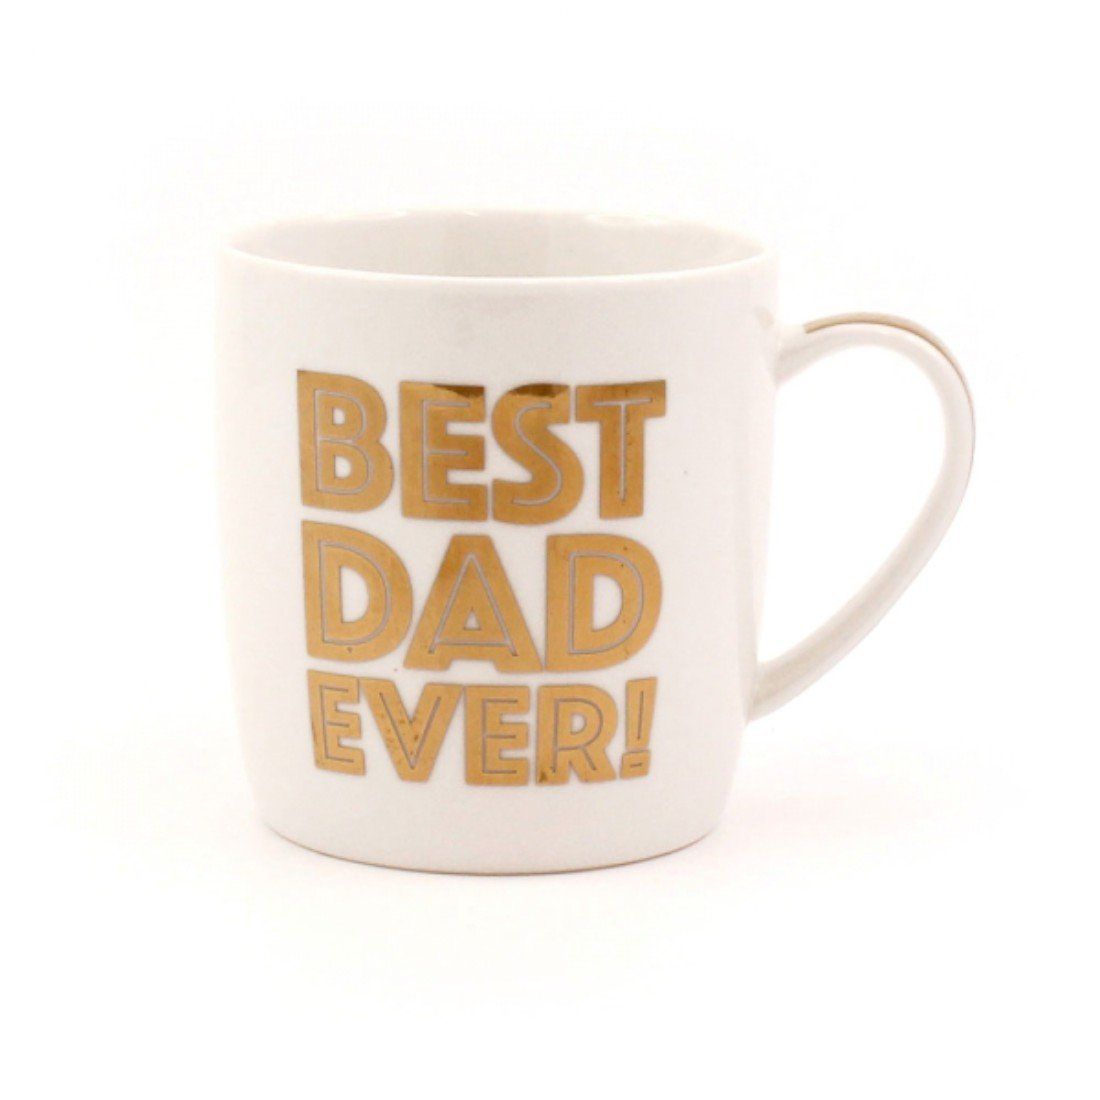 """Best Dad Ever"" White & Gold Fun / Cheeky Fine China Mug with Presentation Box GiftRush"